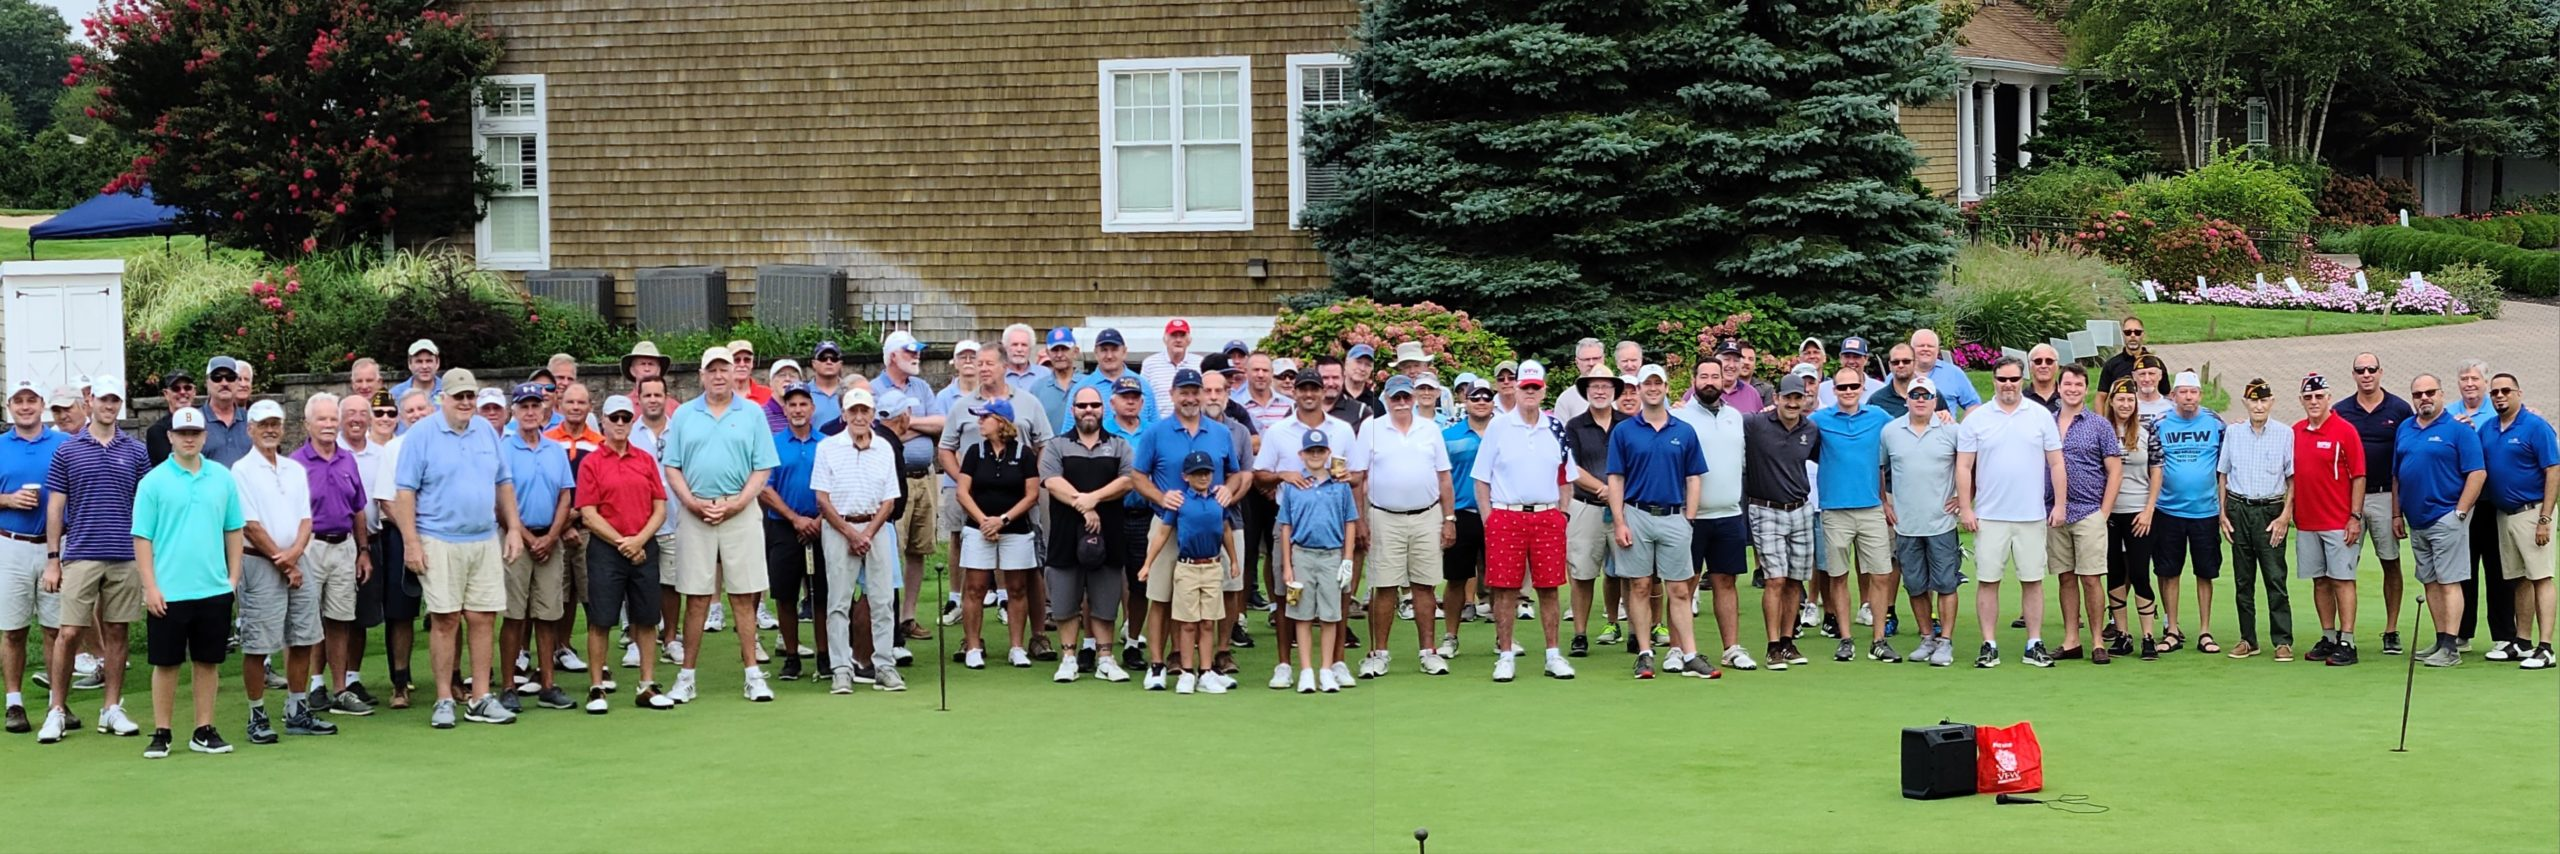 Golfers gathered at The Vineyards Golf Club in Riverhead in late August in support of the Veterans of Forign Wars Post 5350 of Westhampton, which had its annual golf outing.